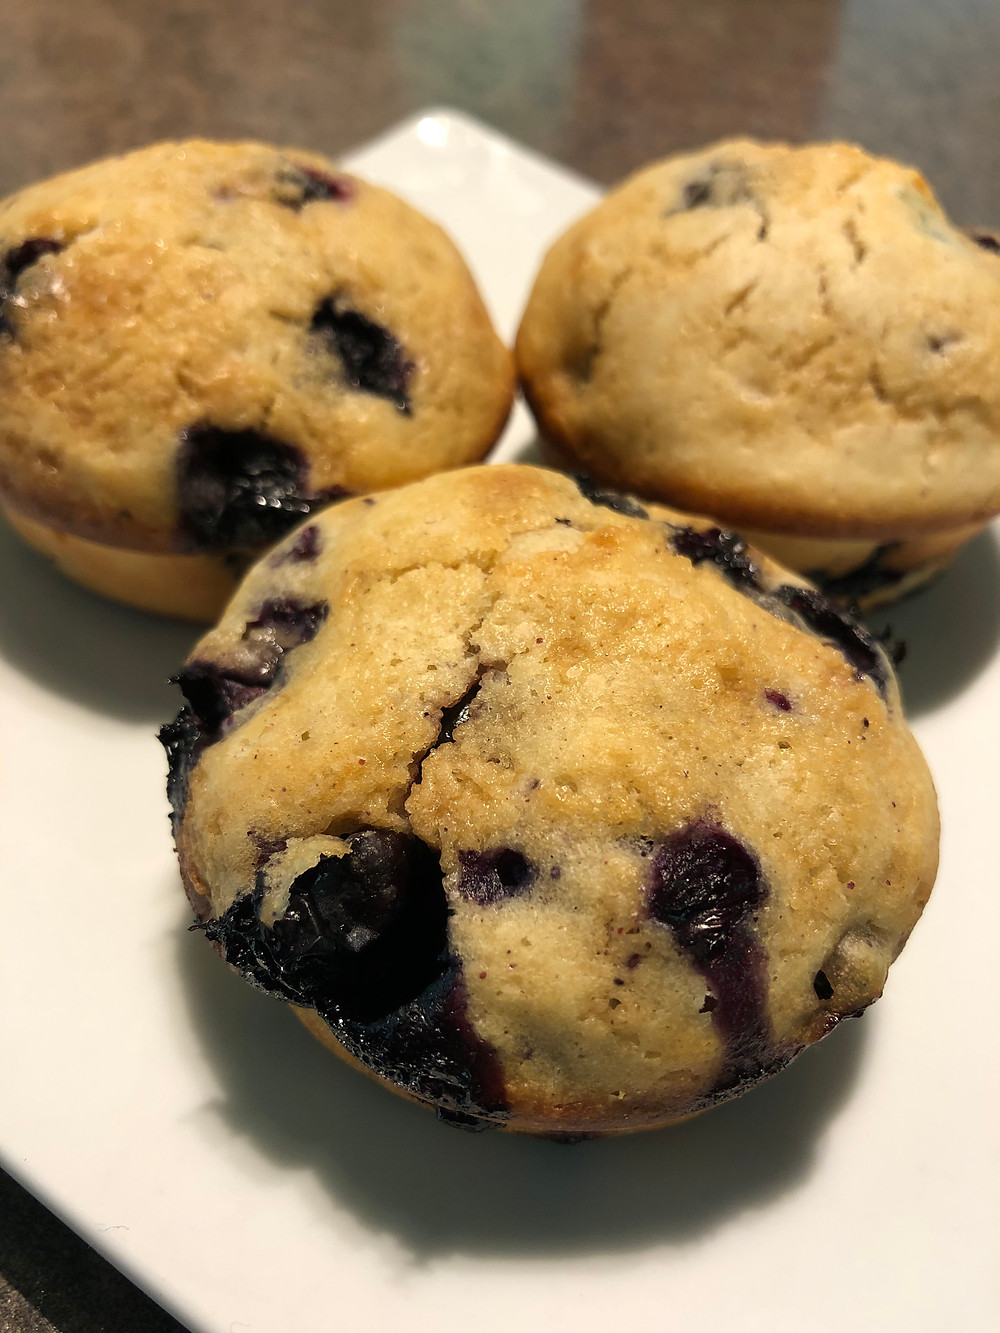 Three blueberry muffins sit on a white plate, ready to eat!